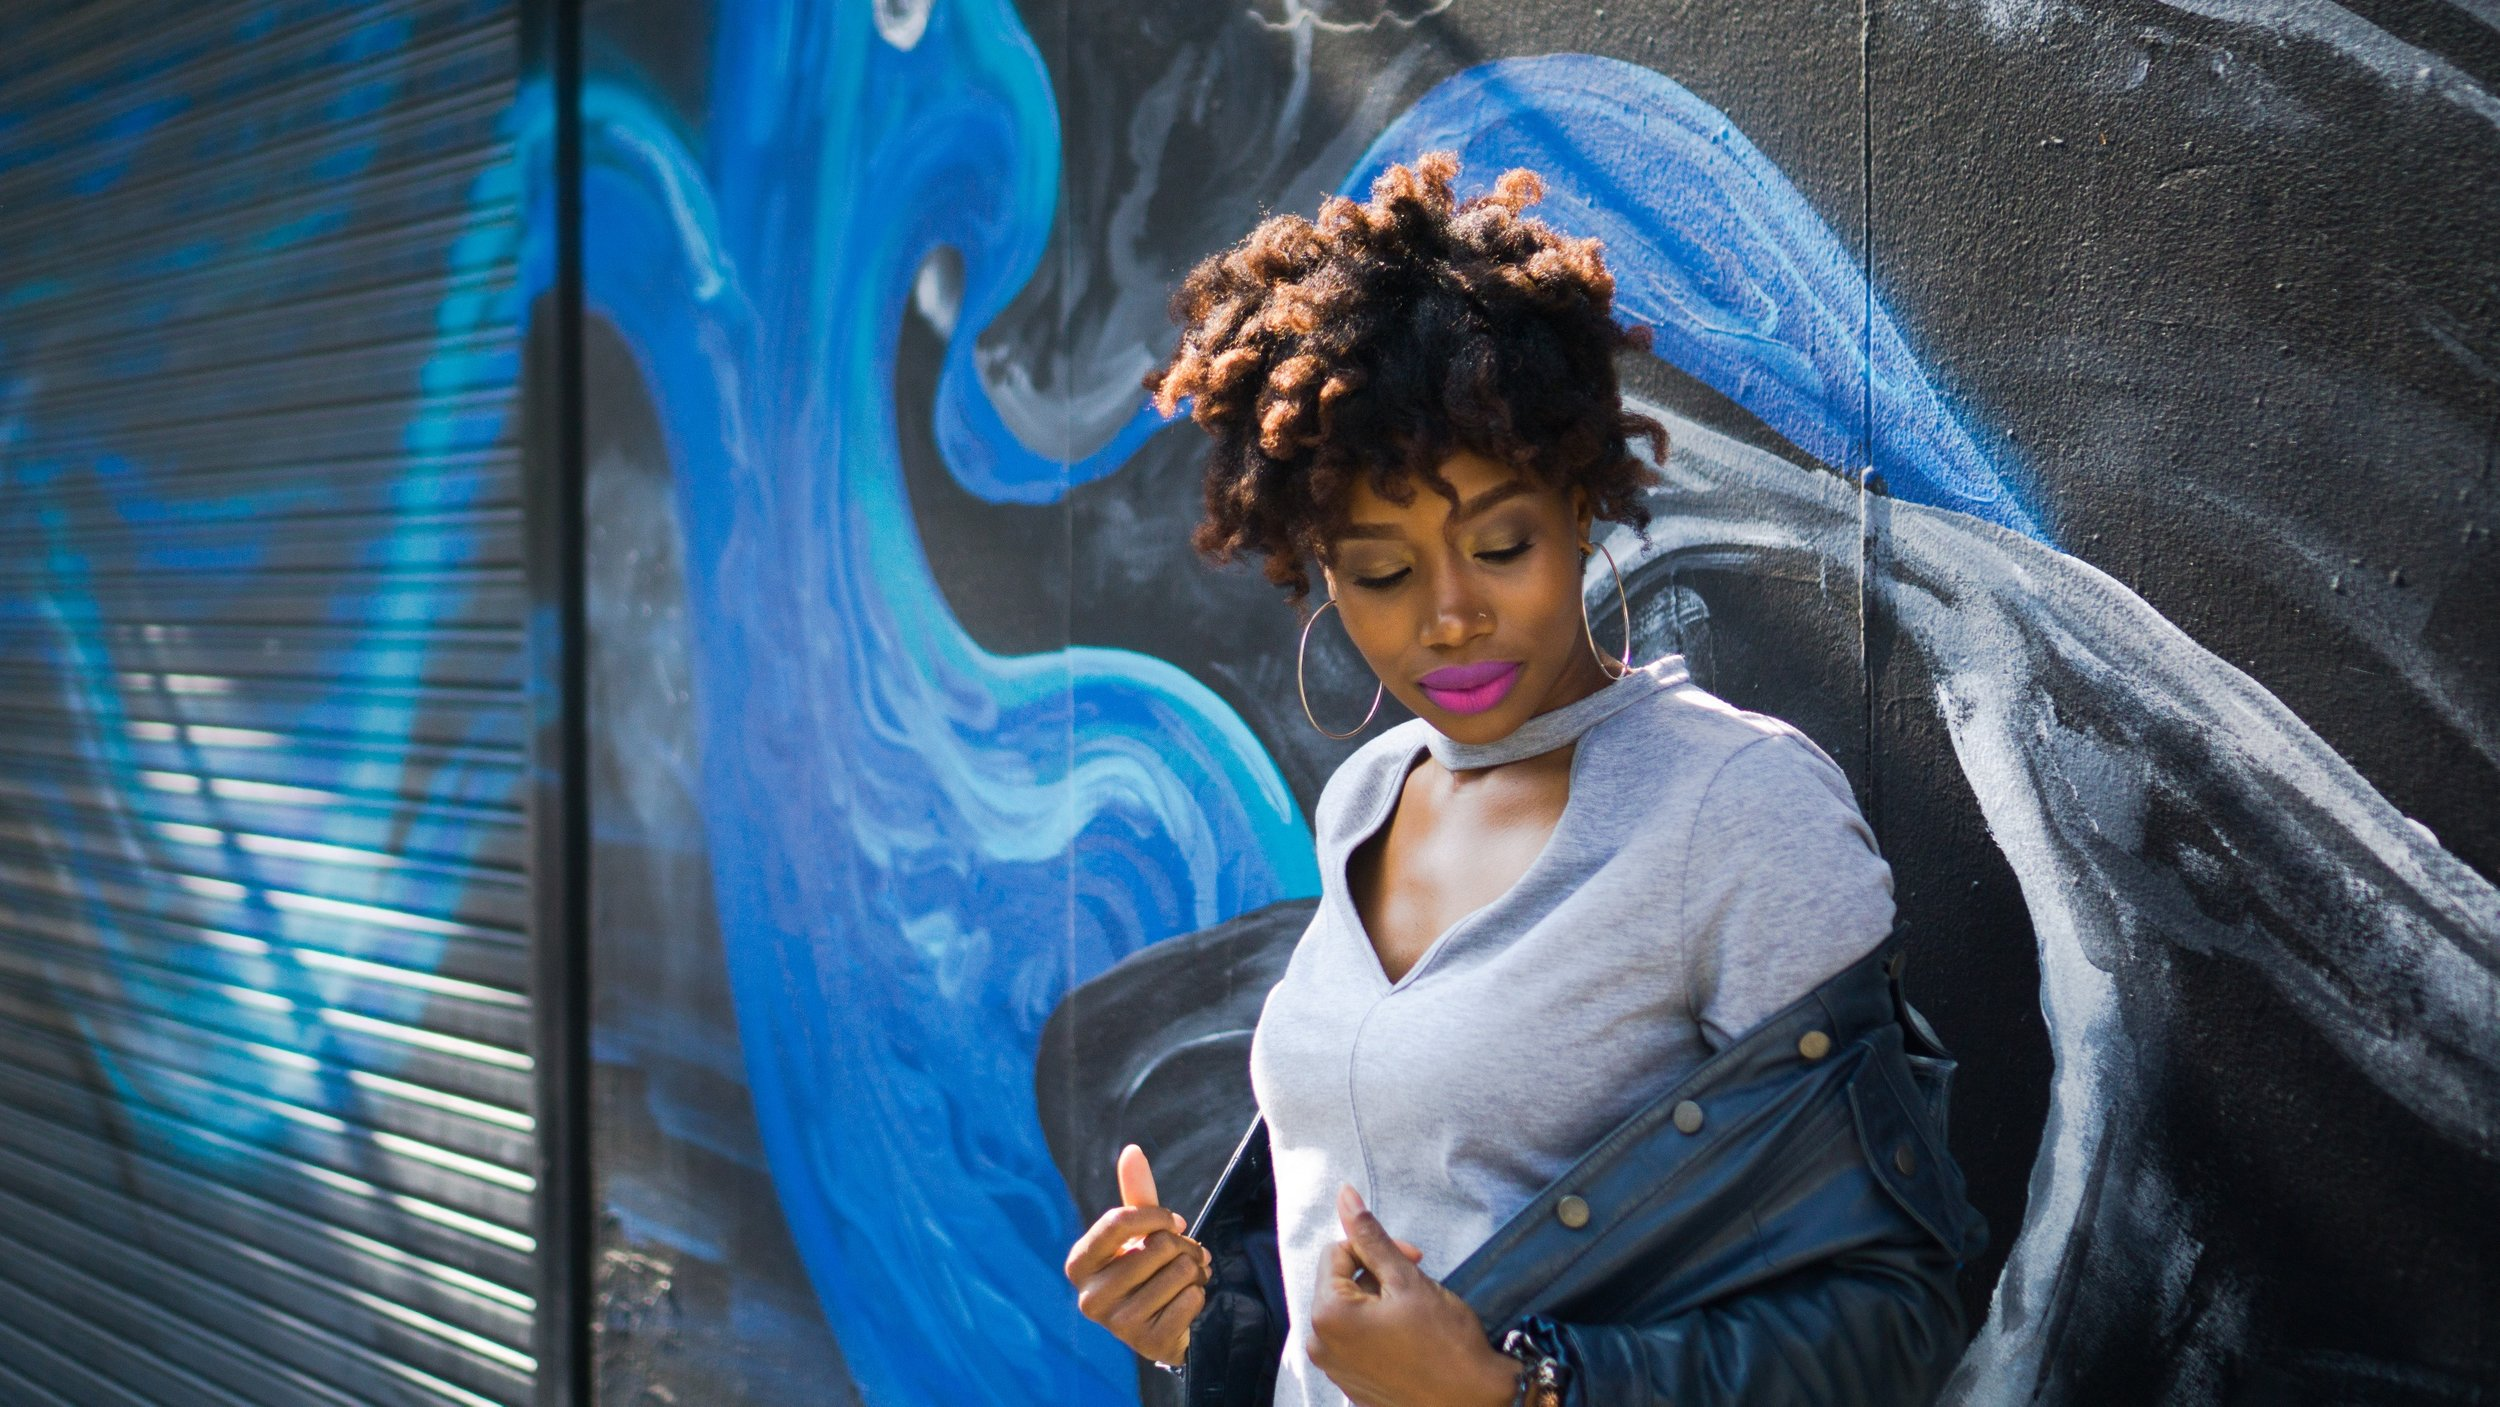 the-kashonna-files-fashion-style-ootd-blogger-natural-hair-blog.jpg